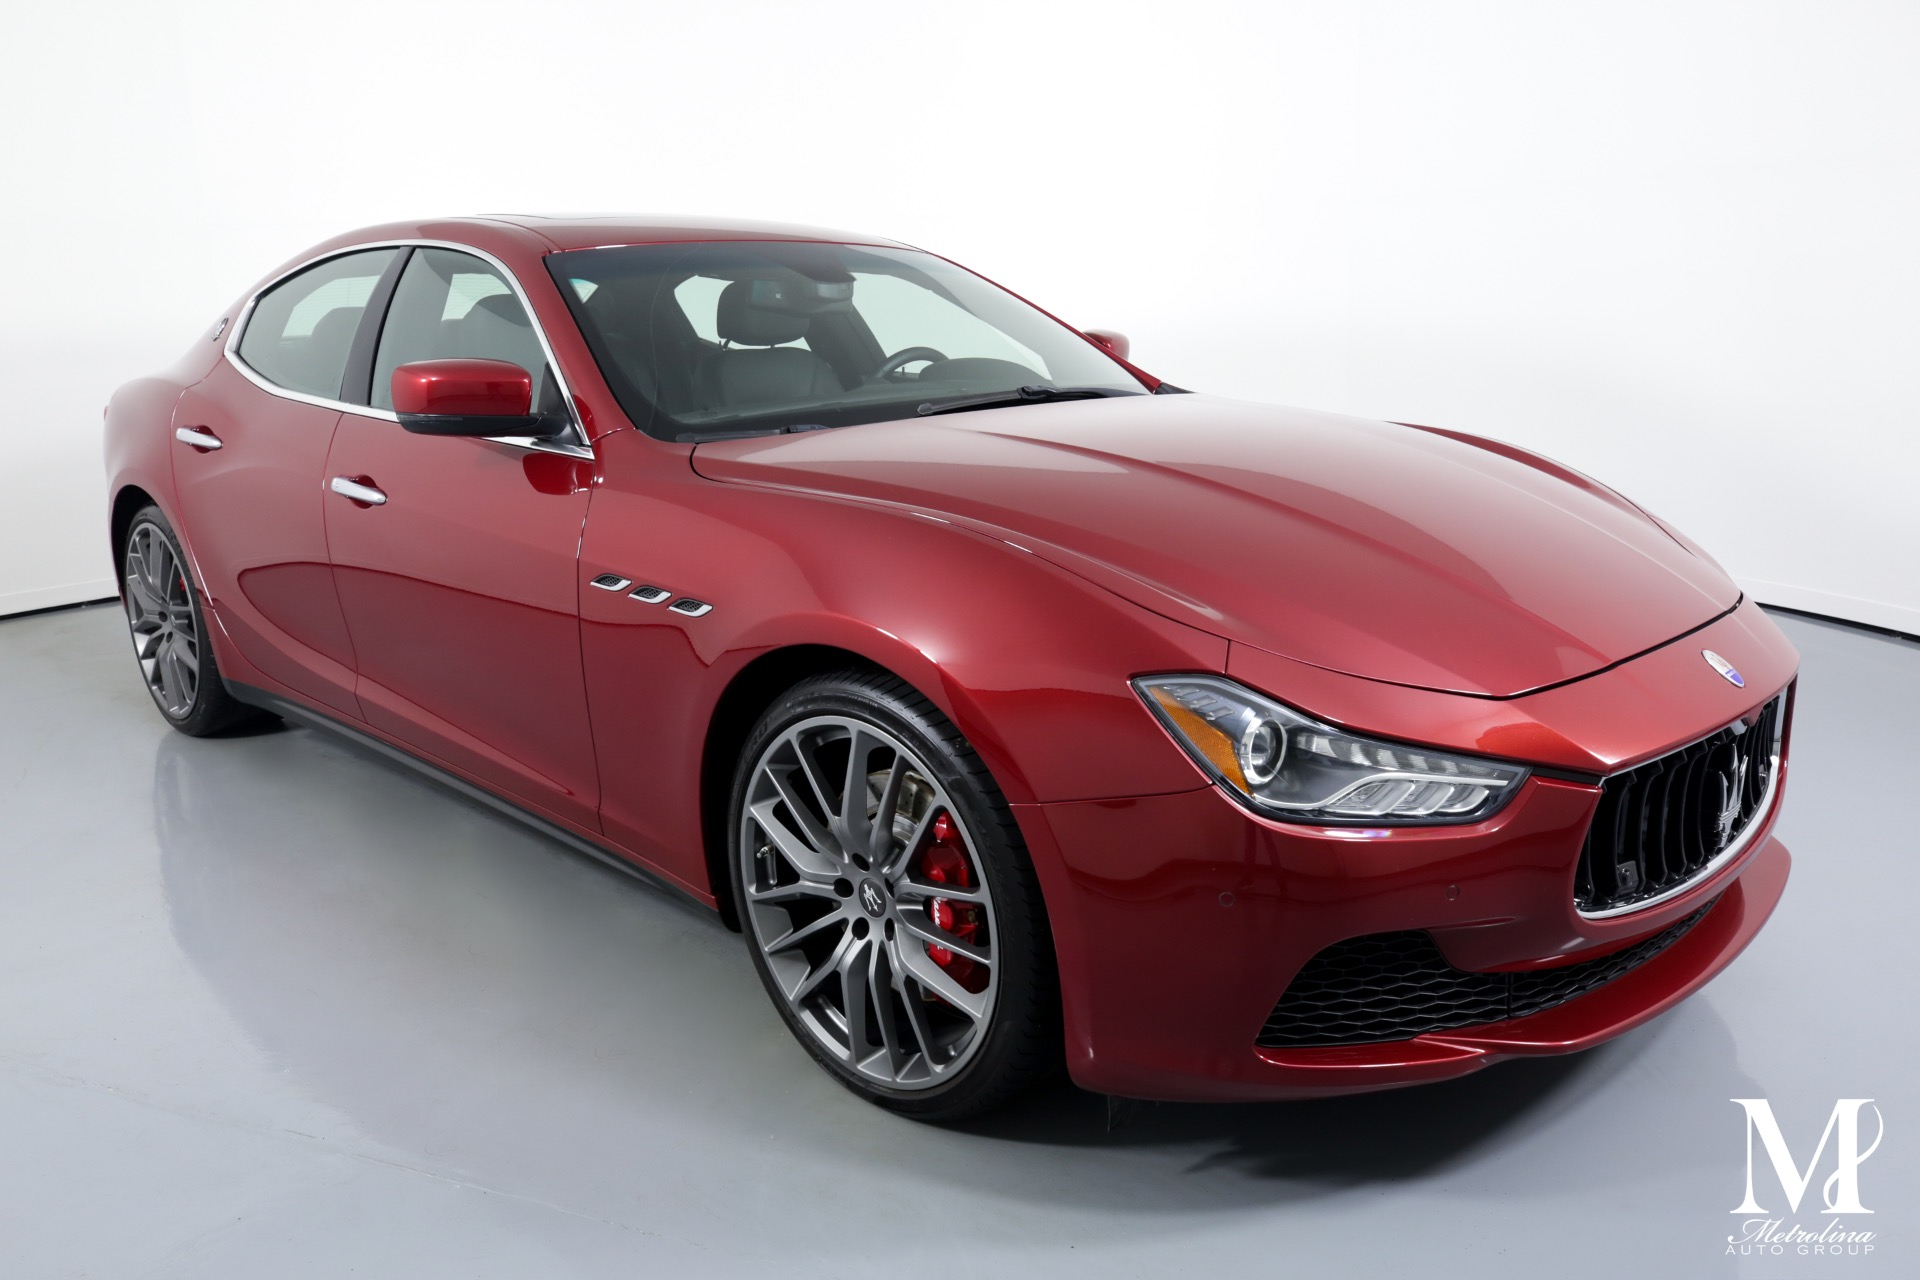 Used 2014 Maserati Ghibli S Q4 for sale Sold at Metrolina Auto Group in Charlotte NC 28217 - 2